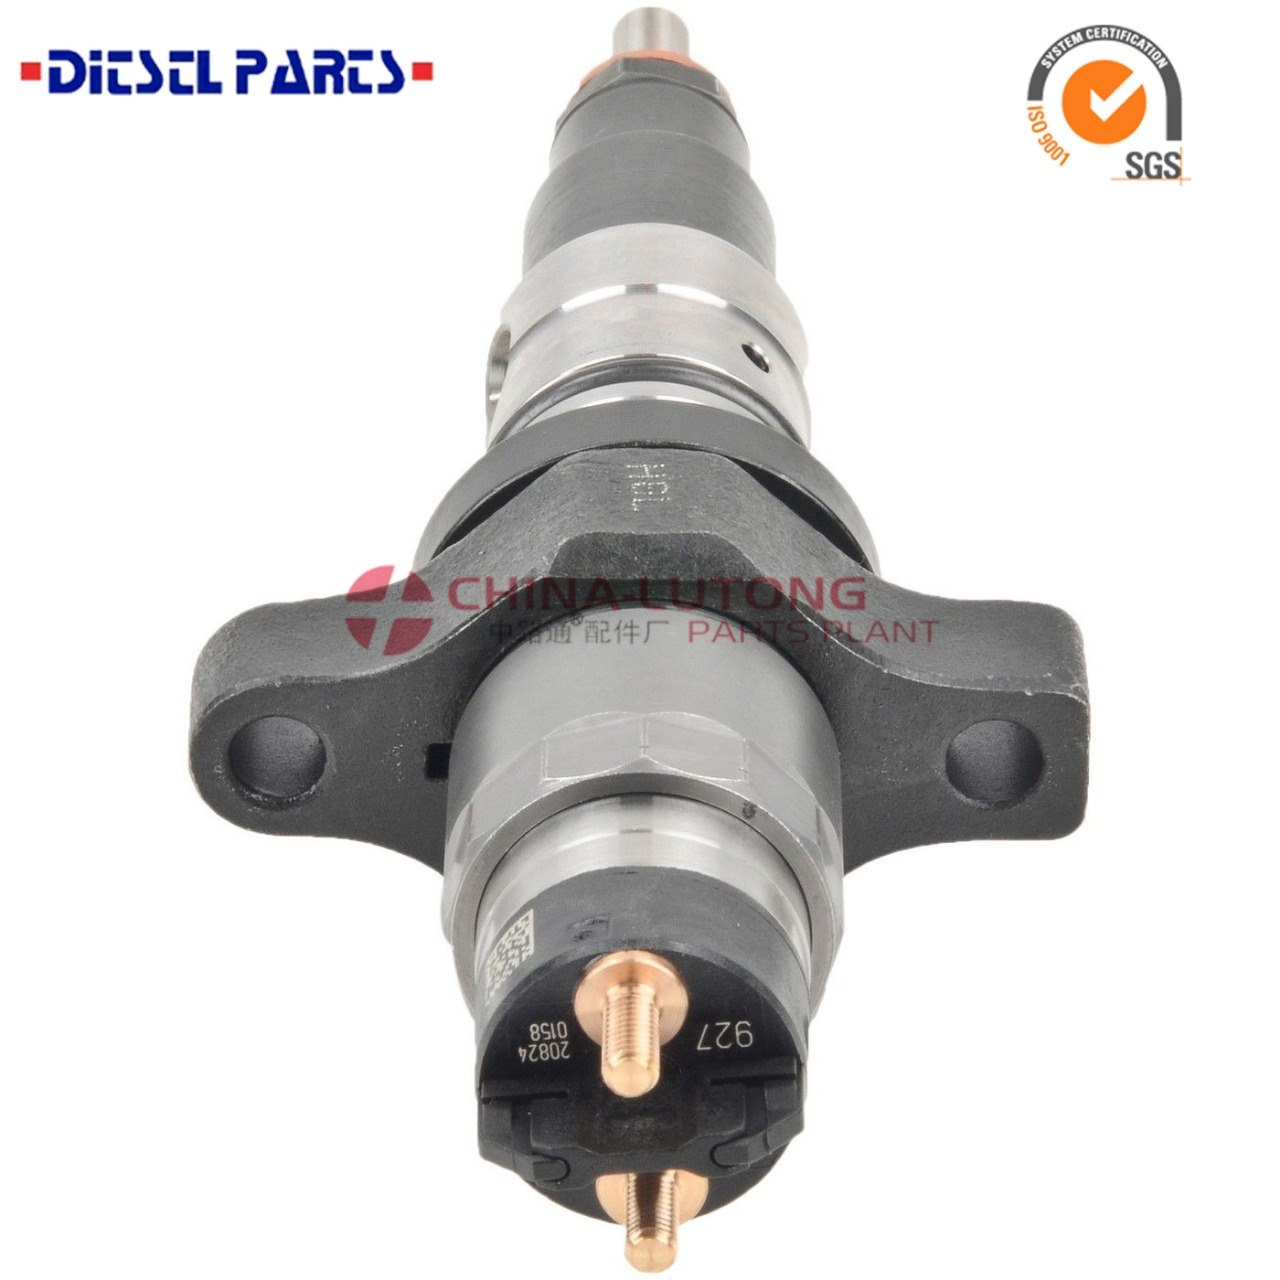 SYSTEM CEATIRICATION SGS -DנדוTL PAR3ה CHINA LUTONG AC14 PARTSPLANT 927 0158 20824 LO06 OS  Auto part,Tool accessory,